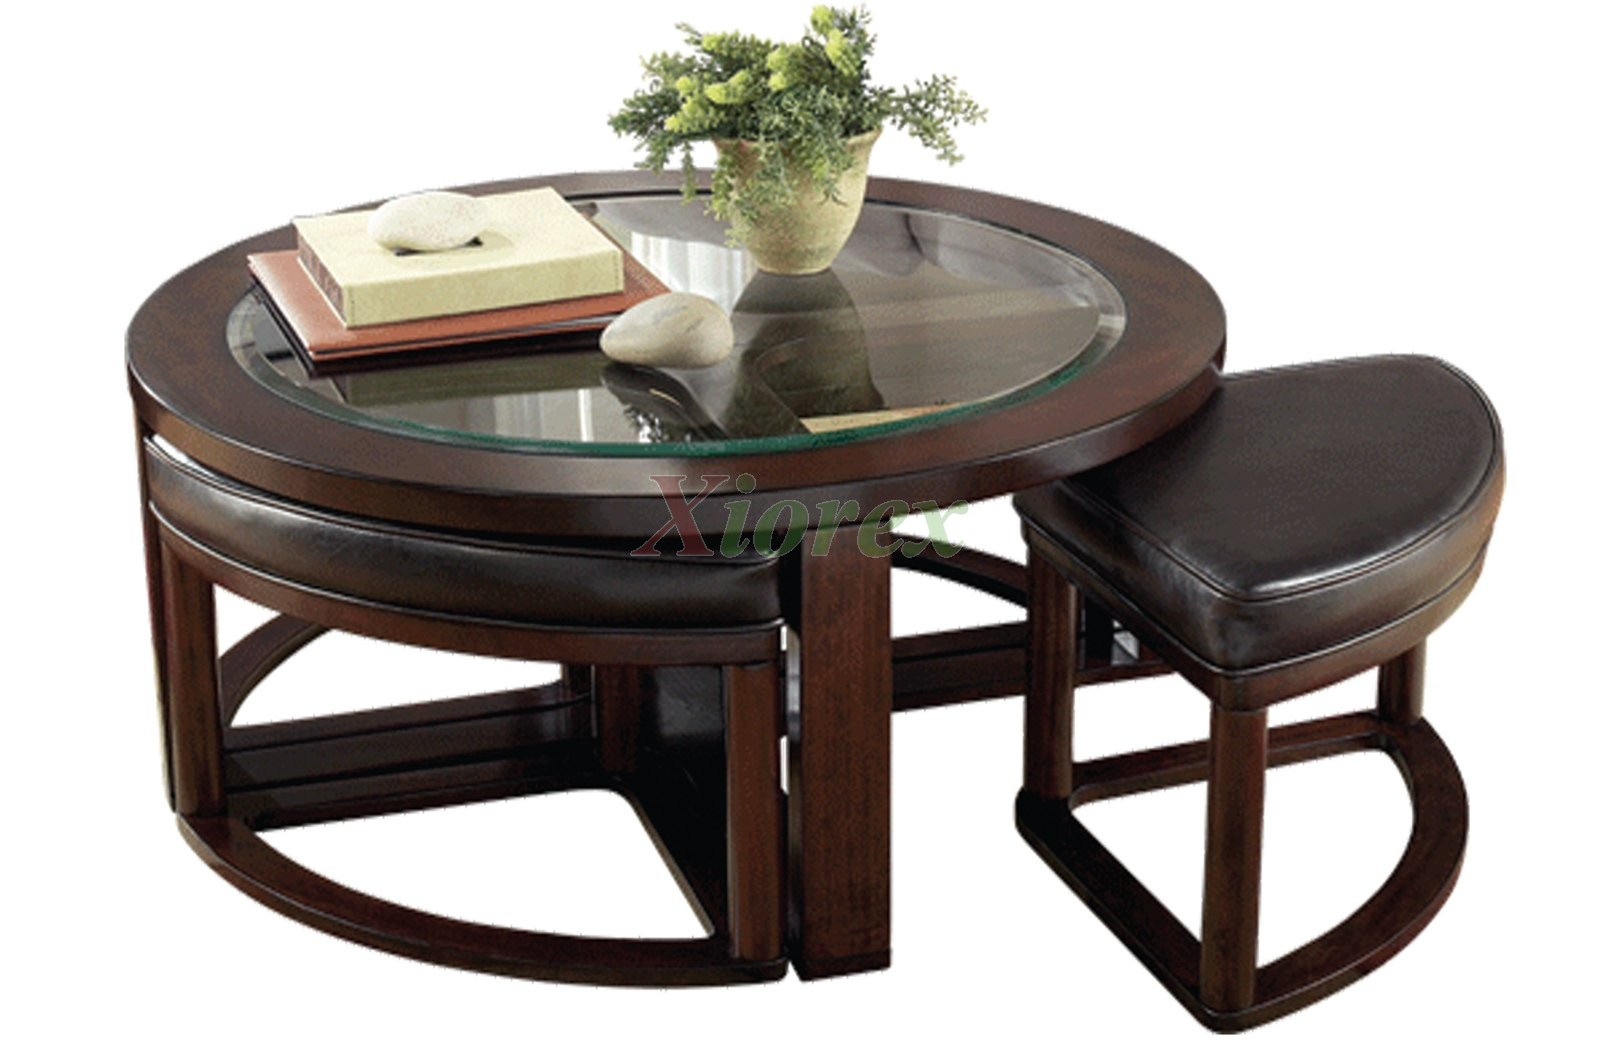 Aquarii round coffee table with stools xiorex for Table with coffee